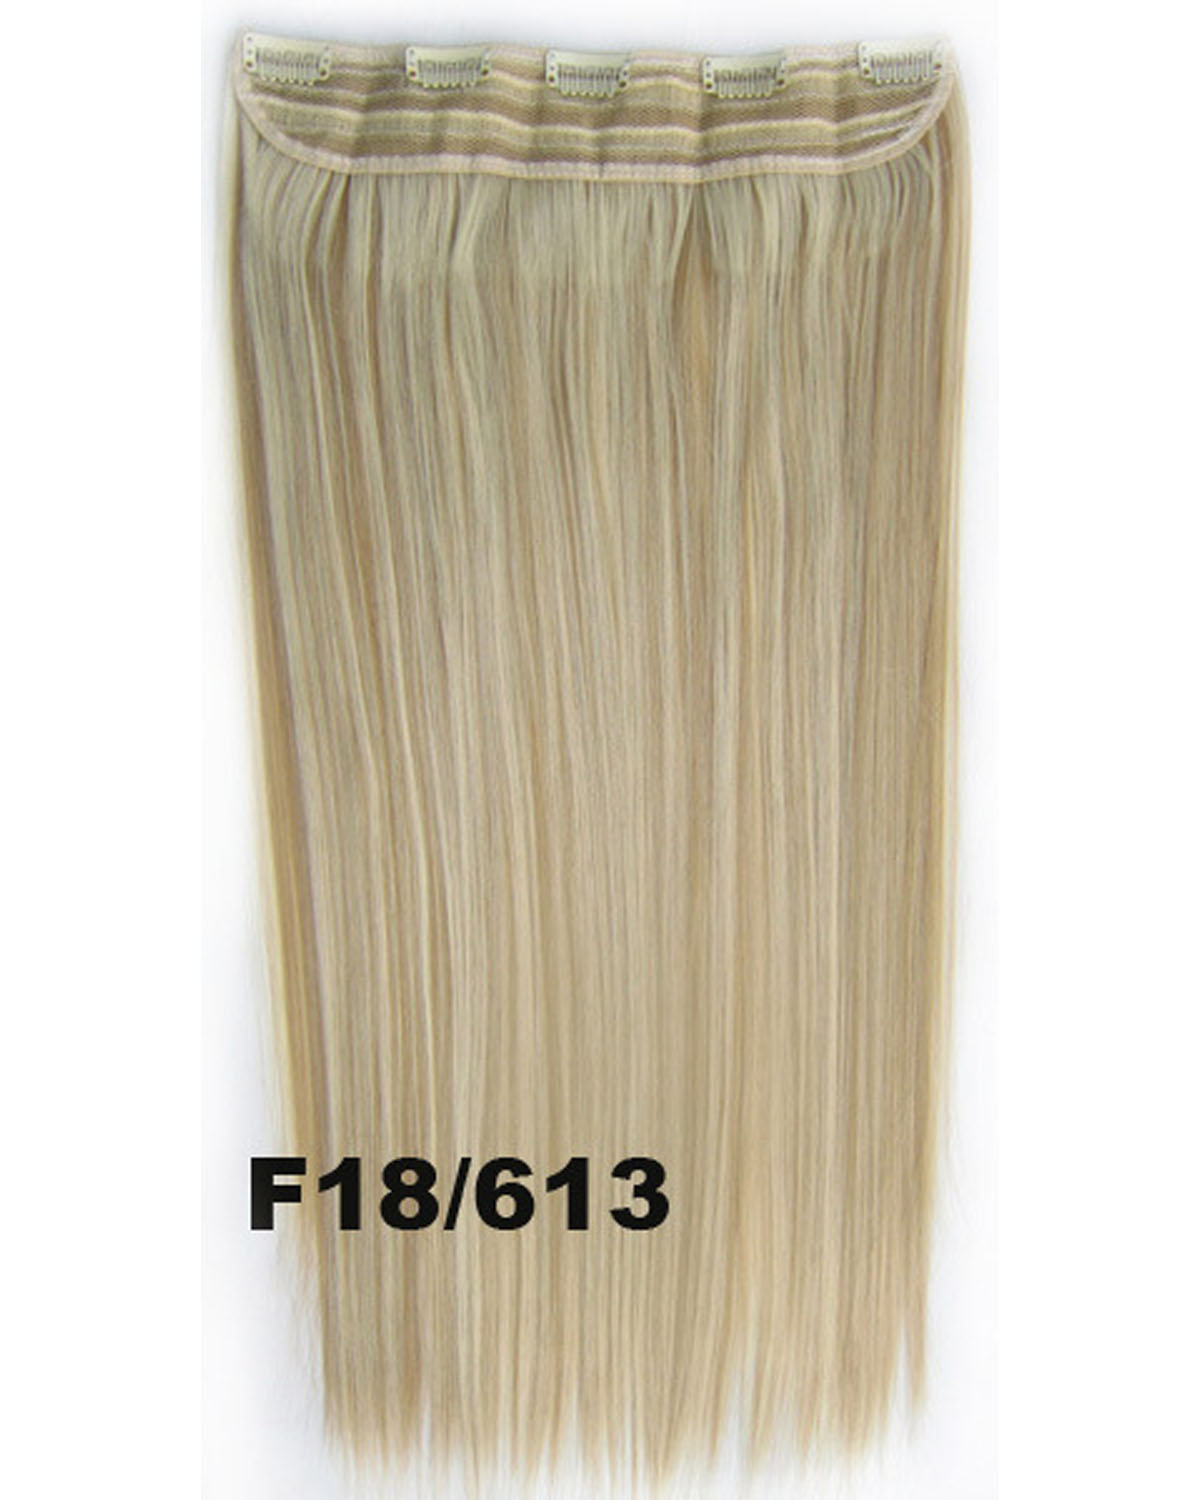 24 Inch Female Ausgezeichnet  Long and Straight One Piece 5 Clips Clip in Synthetic Hair Extension  F18/613